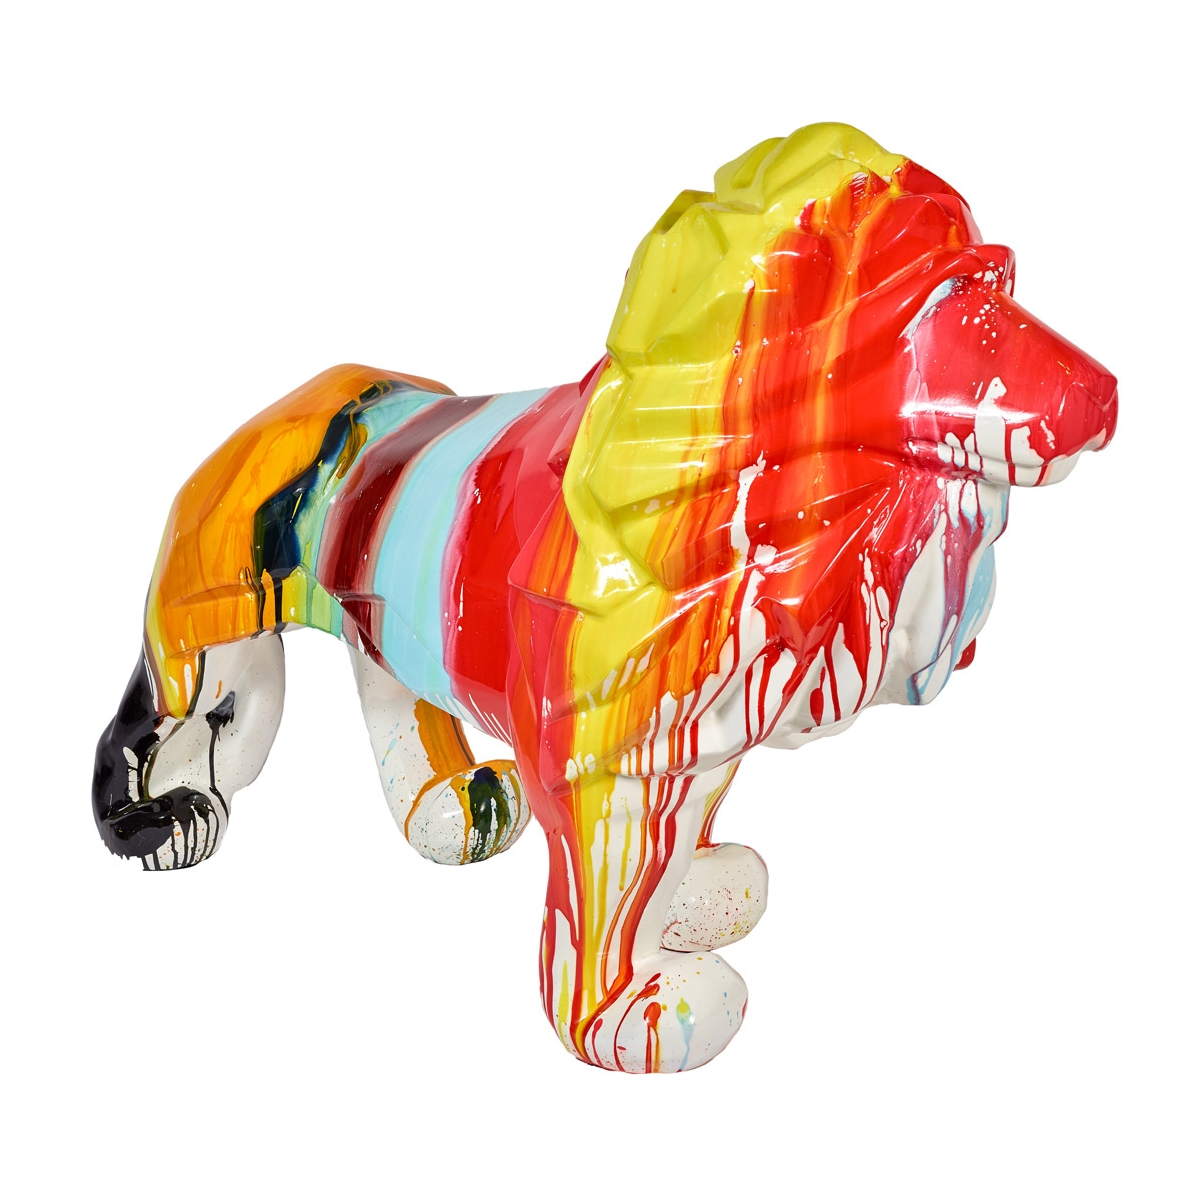 Statue lion design zendart design s lection zendart design for Decoration objet interieur